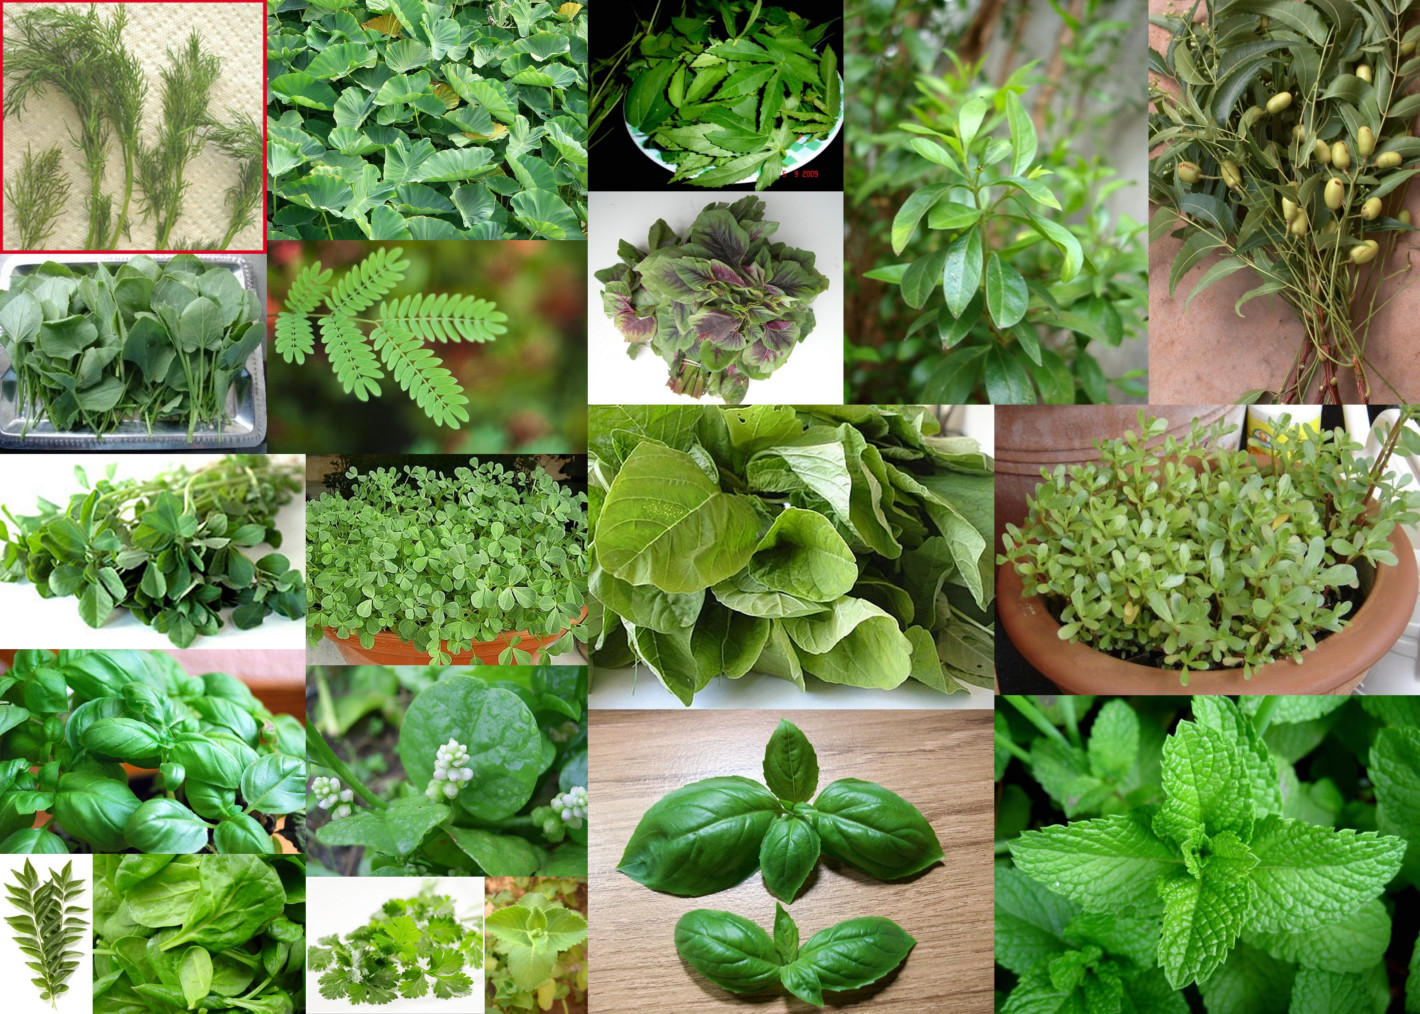 Paddu s tip house herbs and leafy vegetables